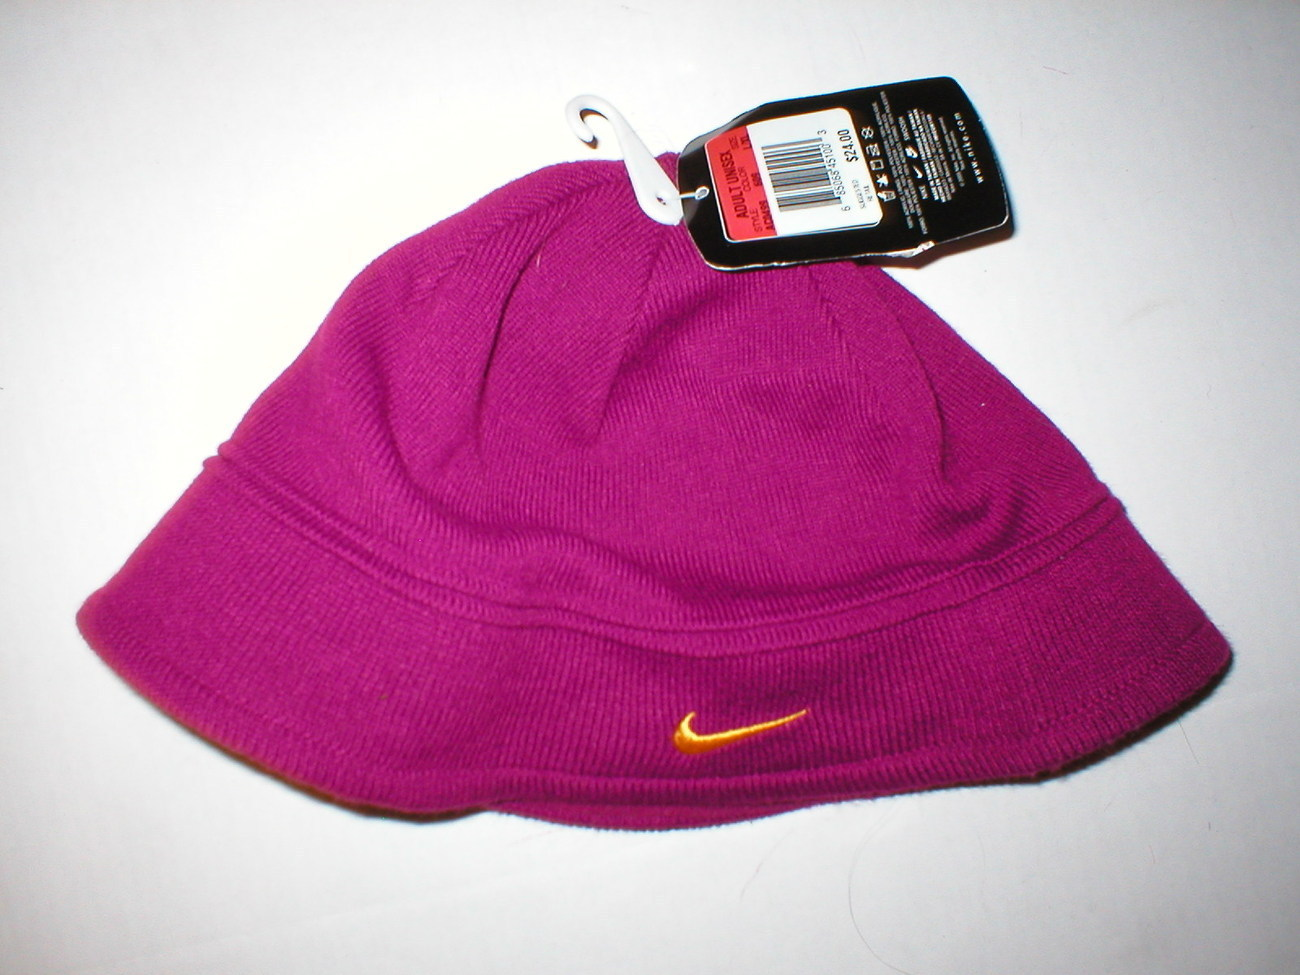 NWT Nike Knit Hat Fleece Womens Purple $24 Nike